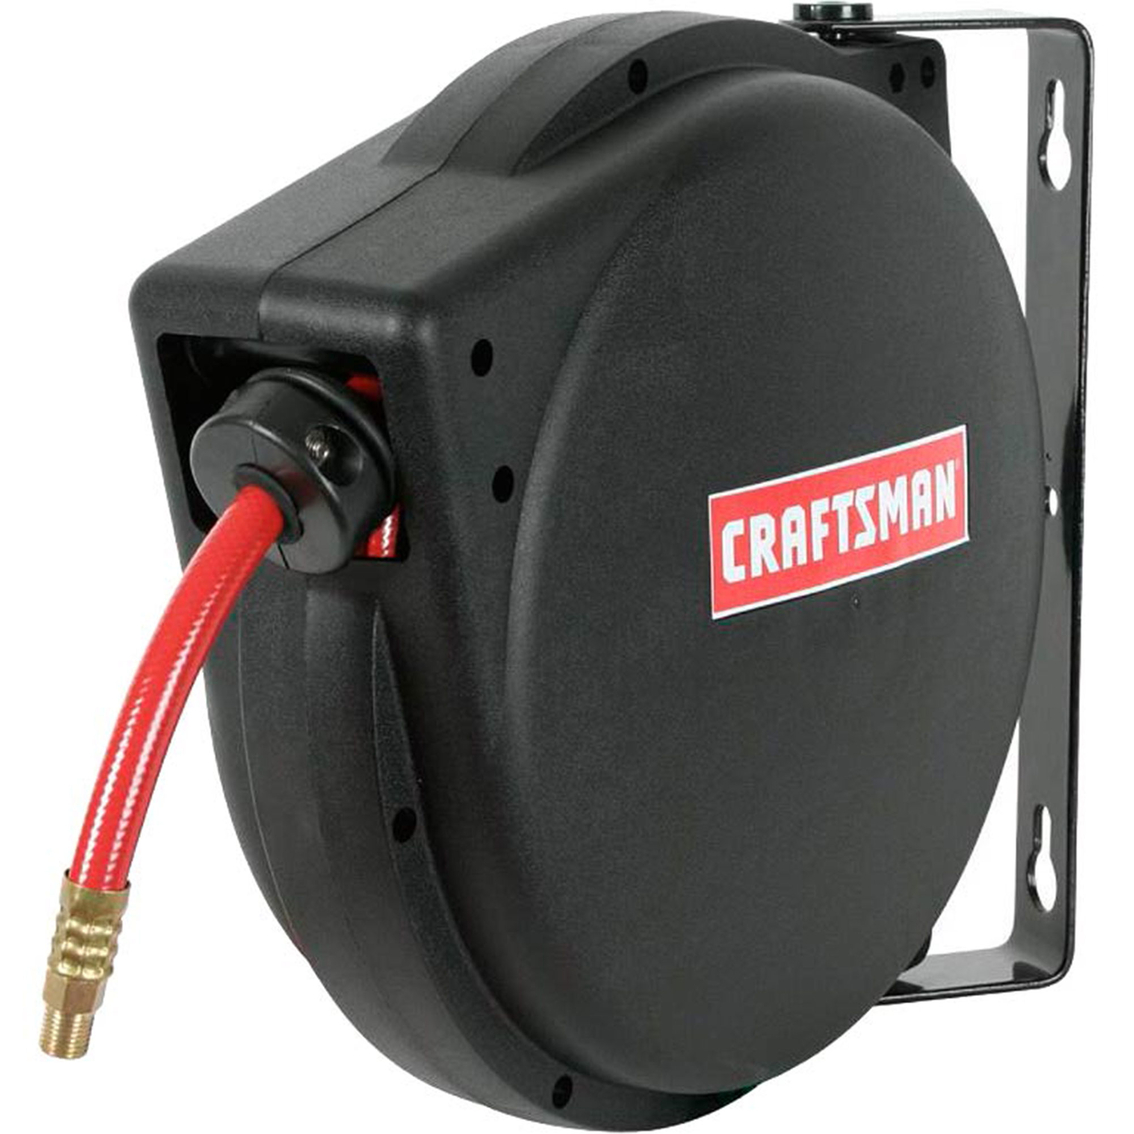 Craftsman 3/8 In. Air Hose Reel | Air Compressors | More | Shop The ...